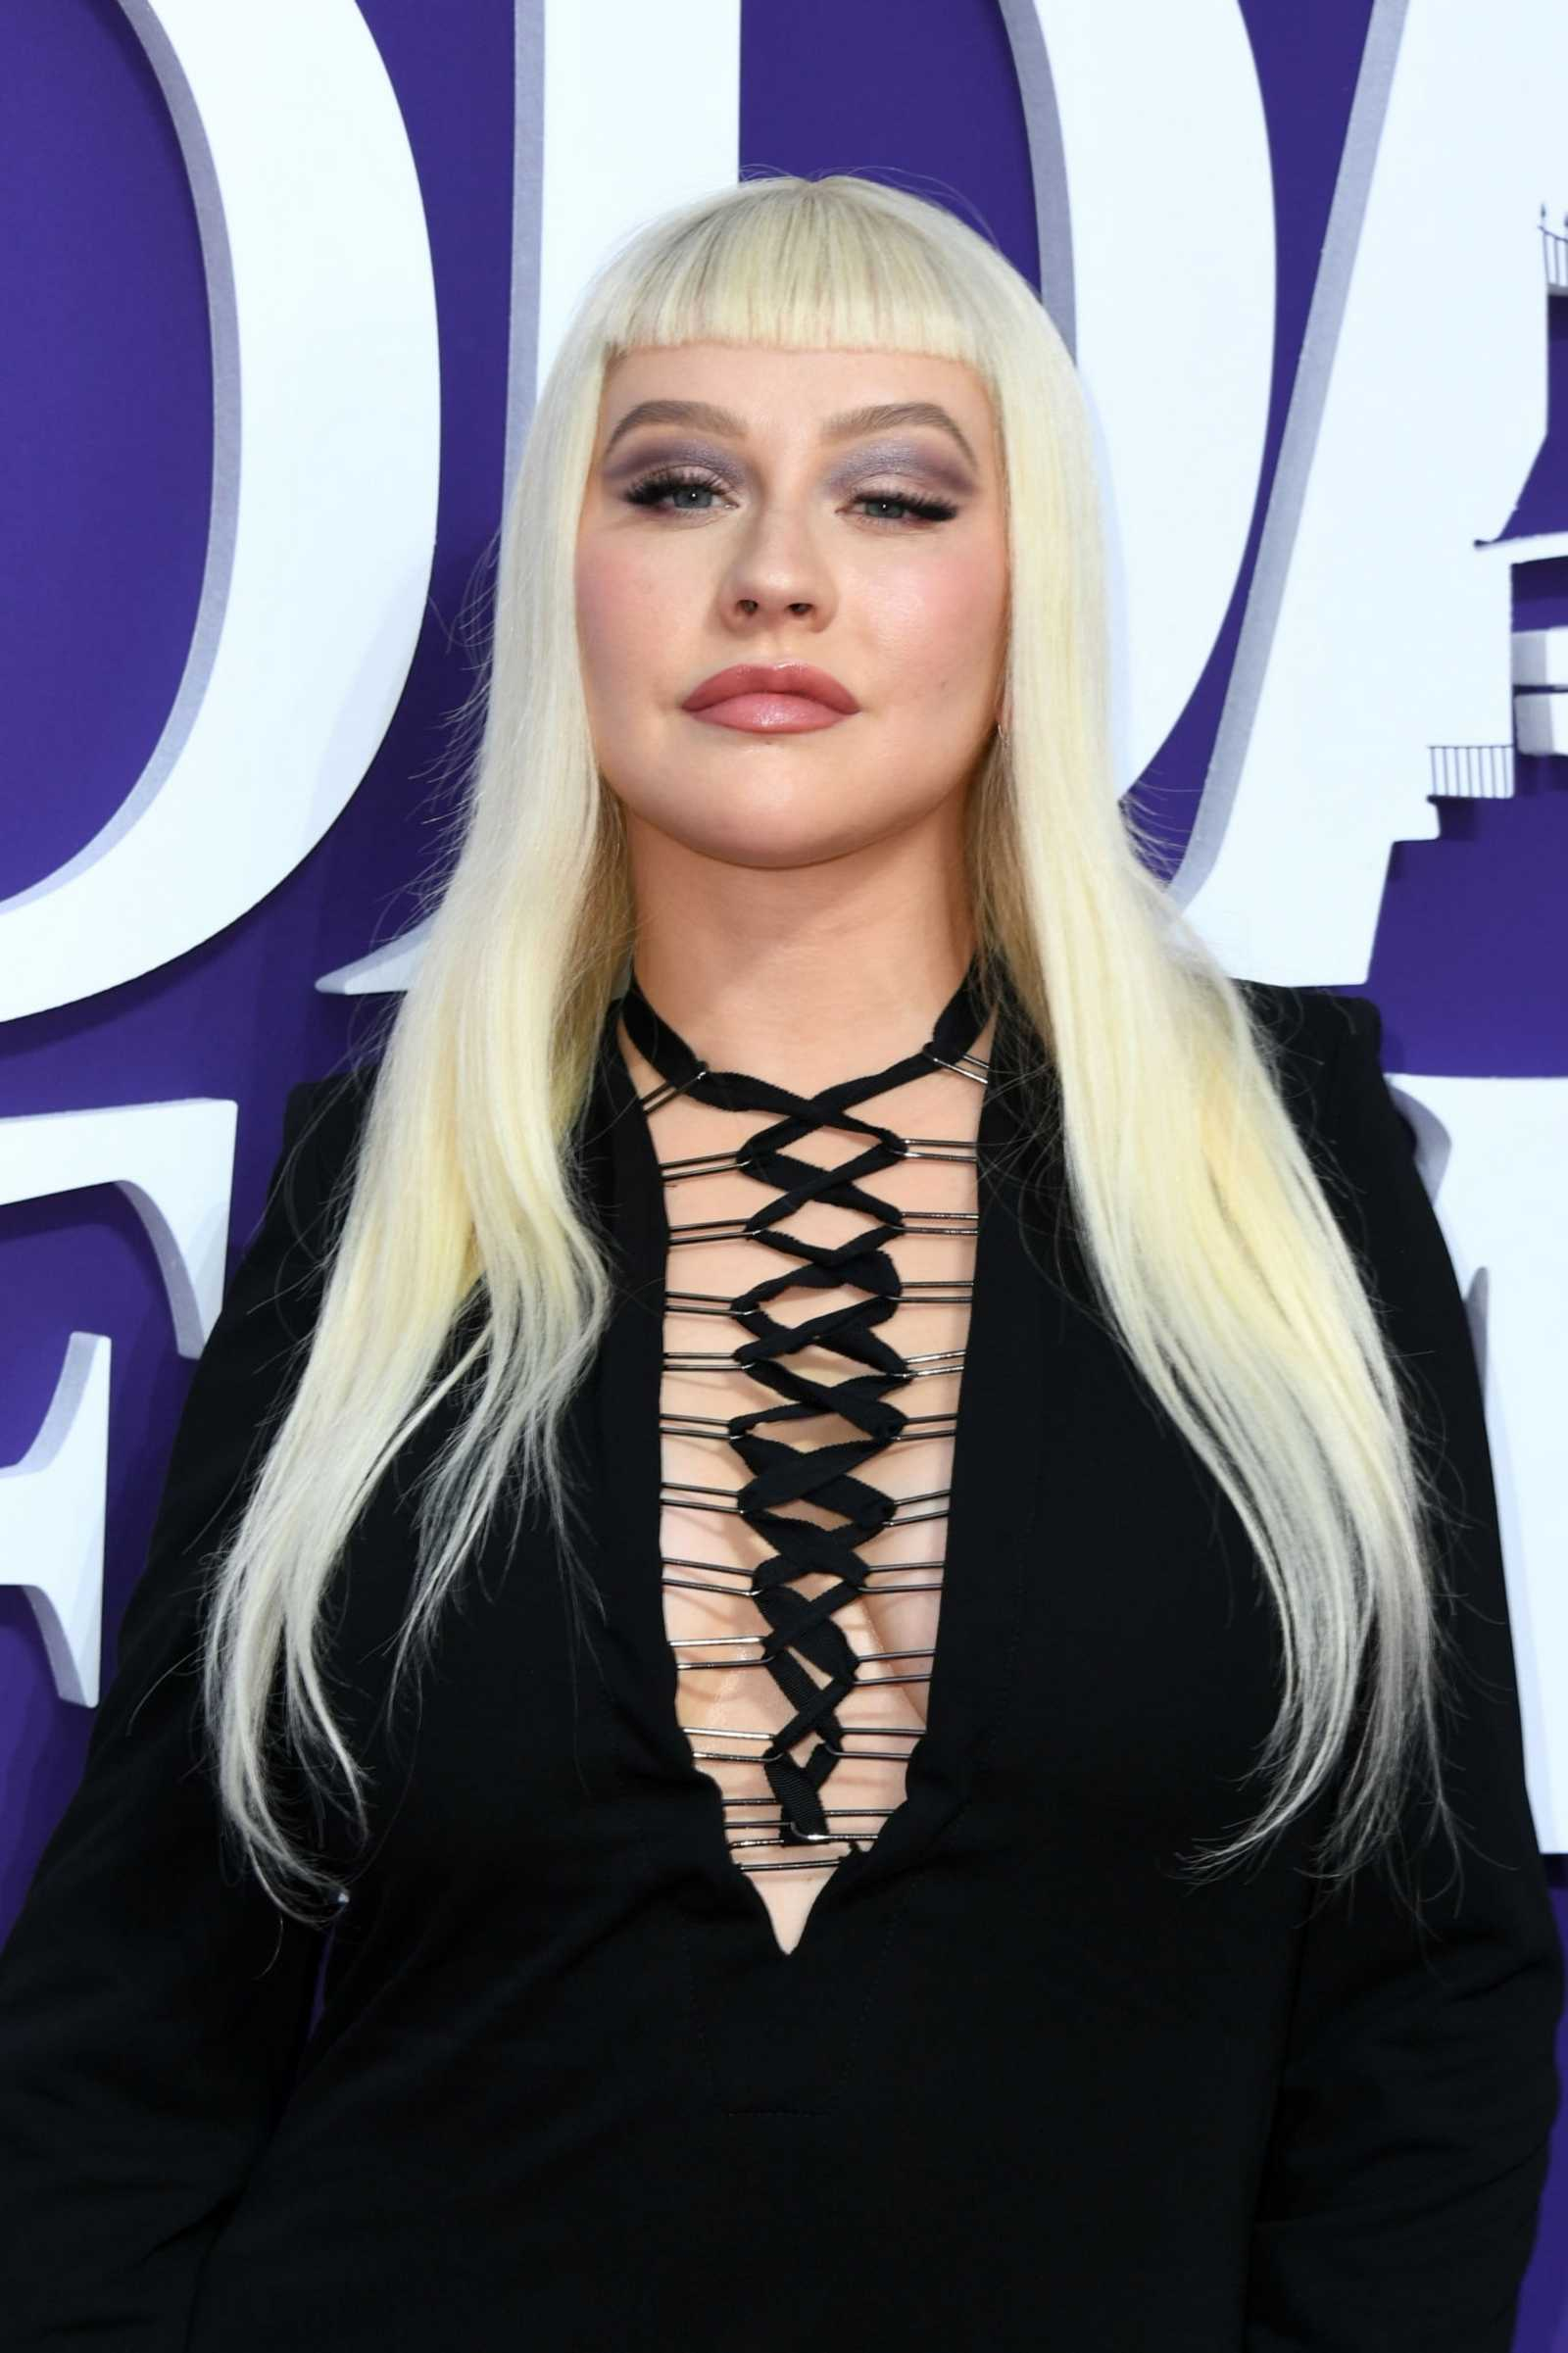 Christina_Aguilera_-_The_Addams_Family_Premiere__in_Los_Angeles_-_October_062C_2019-02.jpg